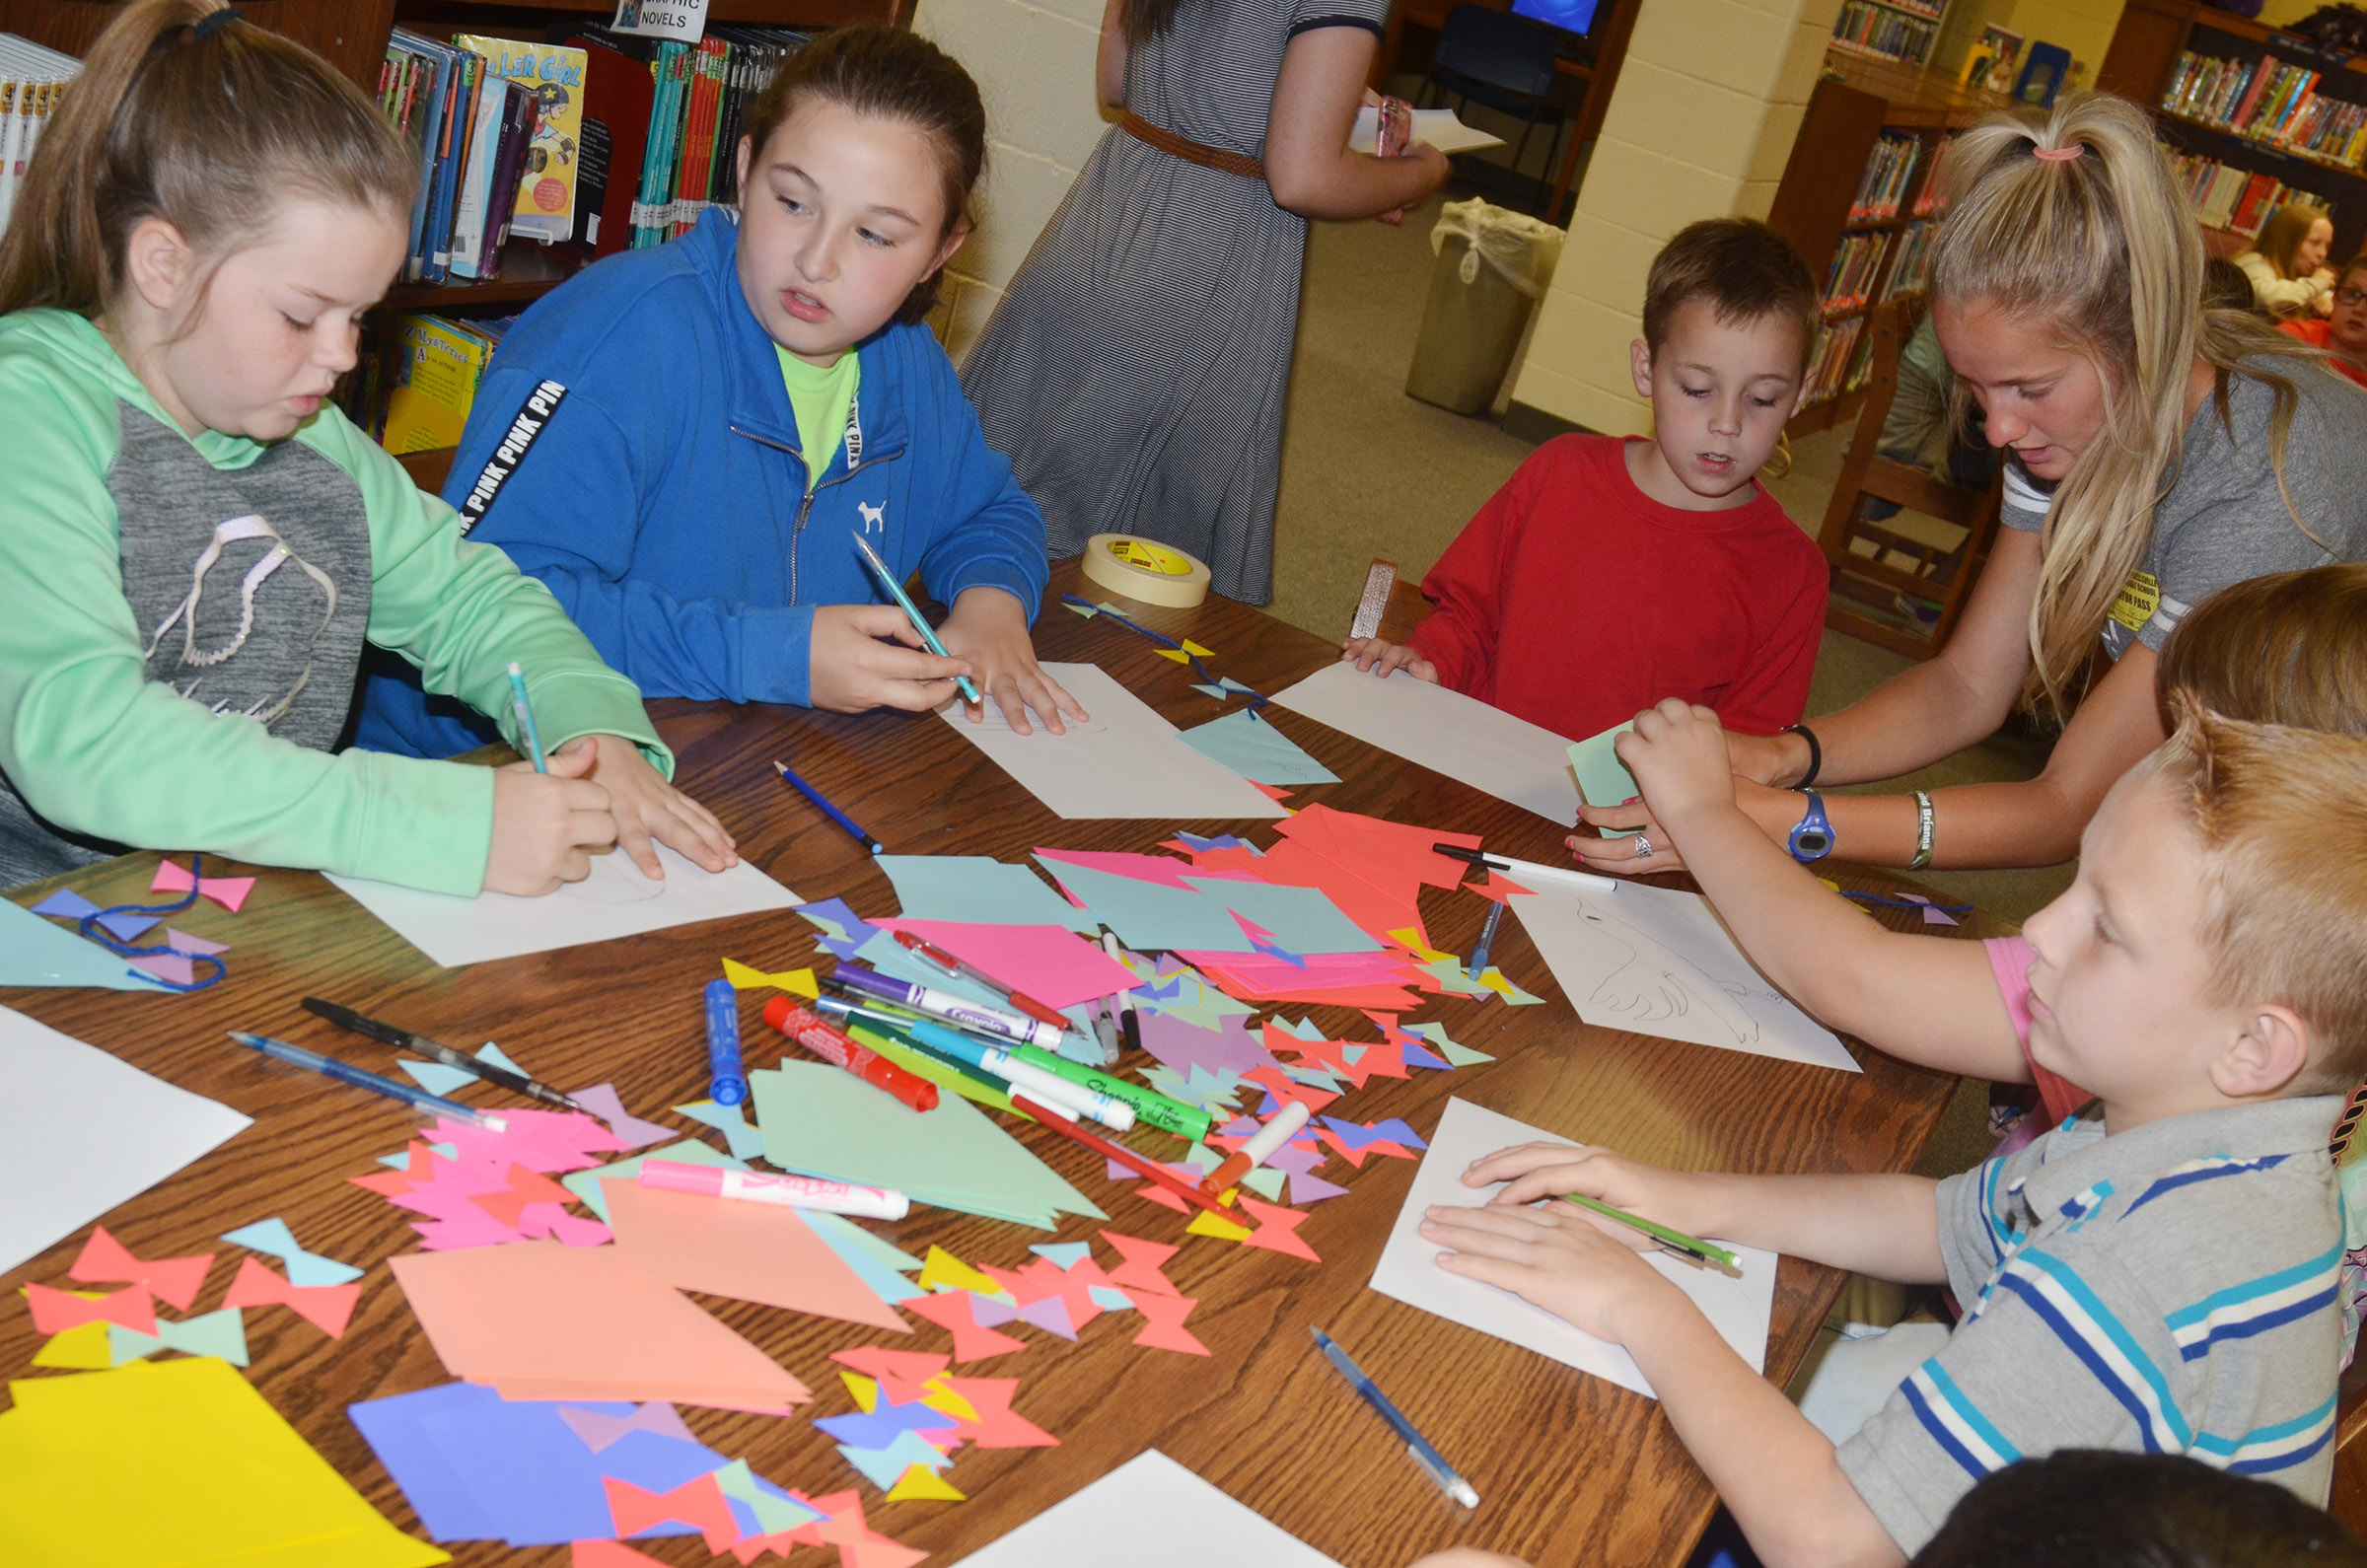 CMS fourth-graders, from left, Miley Hash, Riley Newton and Spencer Bates work on their free verse poems with their classmates.